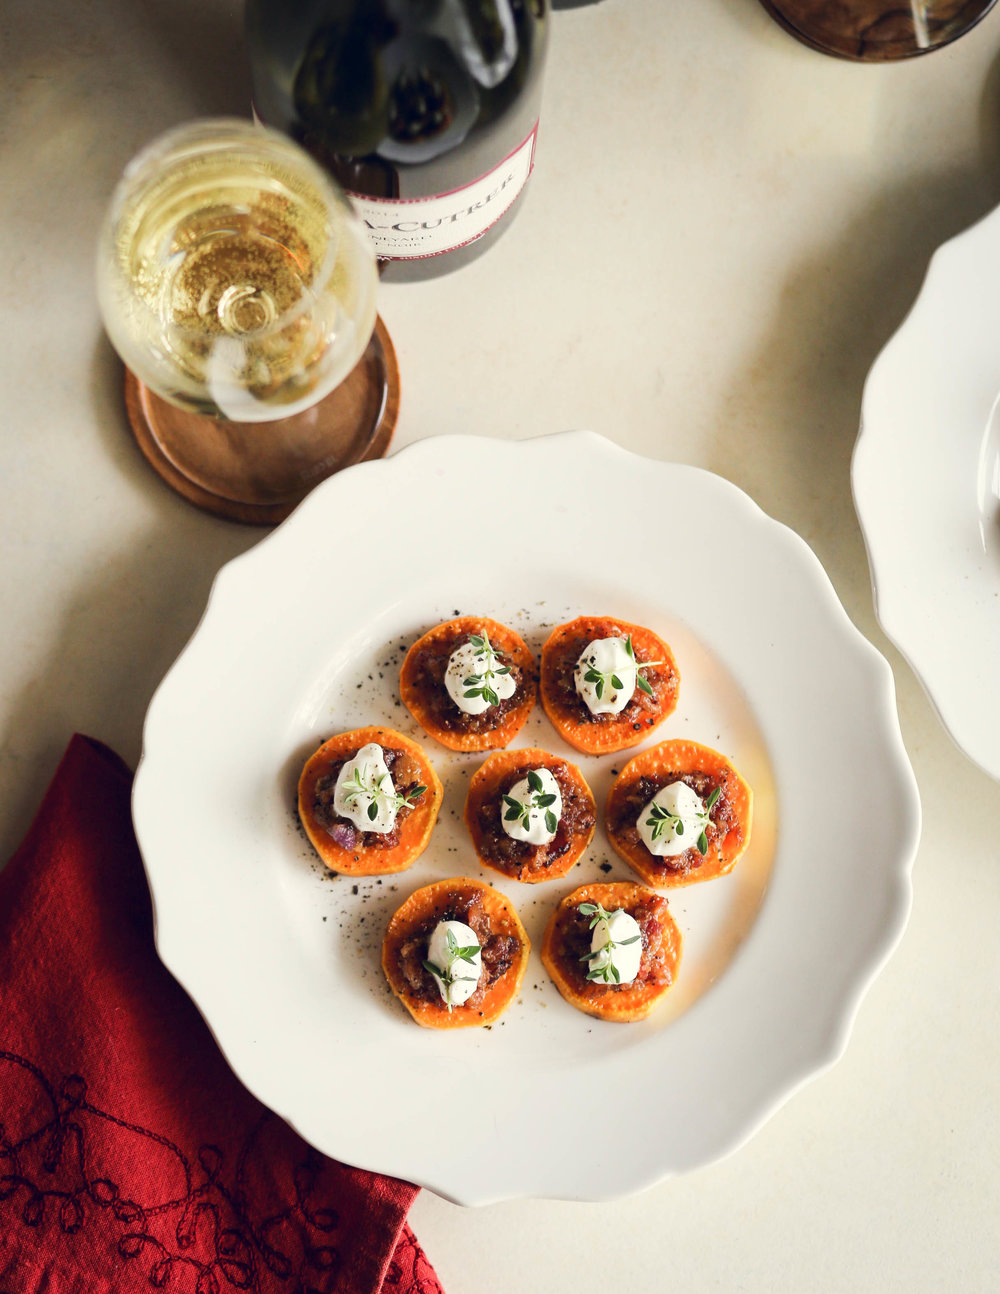 Sweet Potato Medallions with Bacon Jam